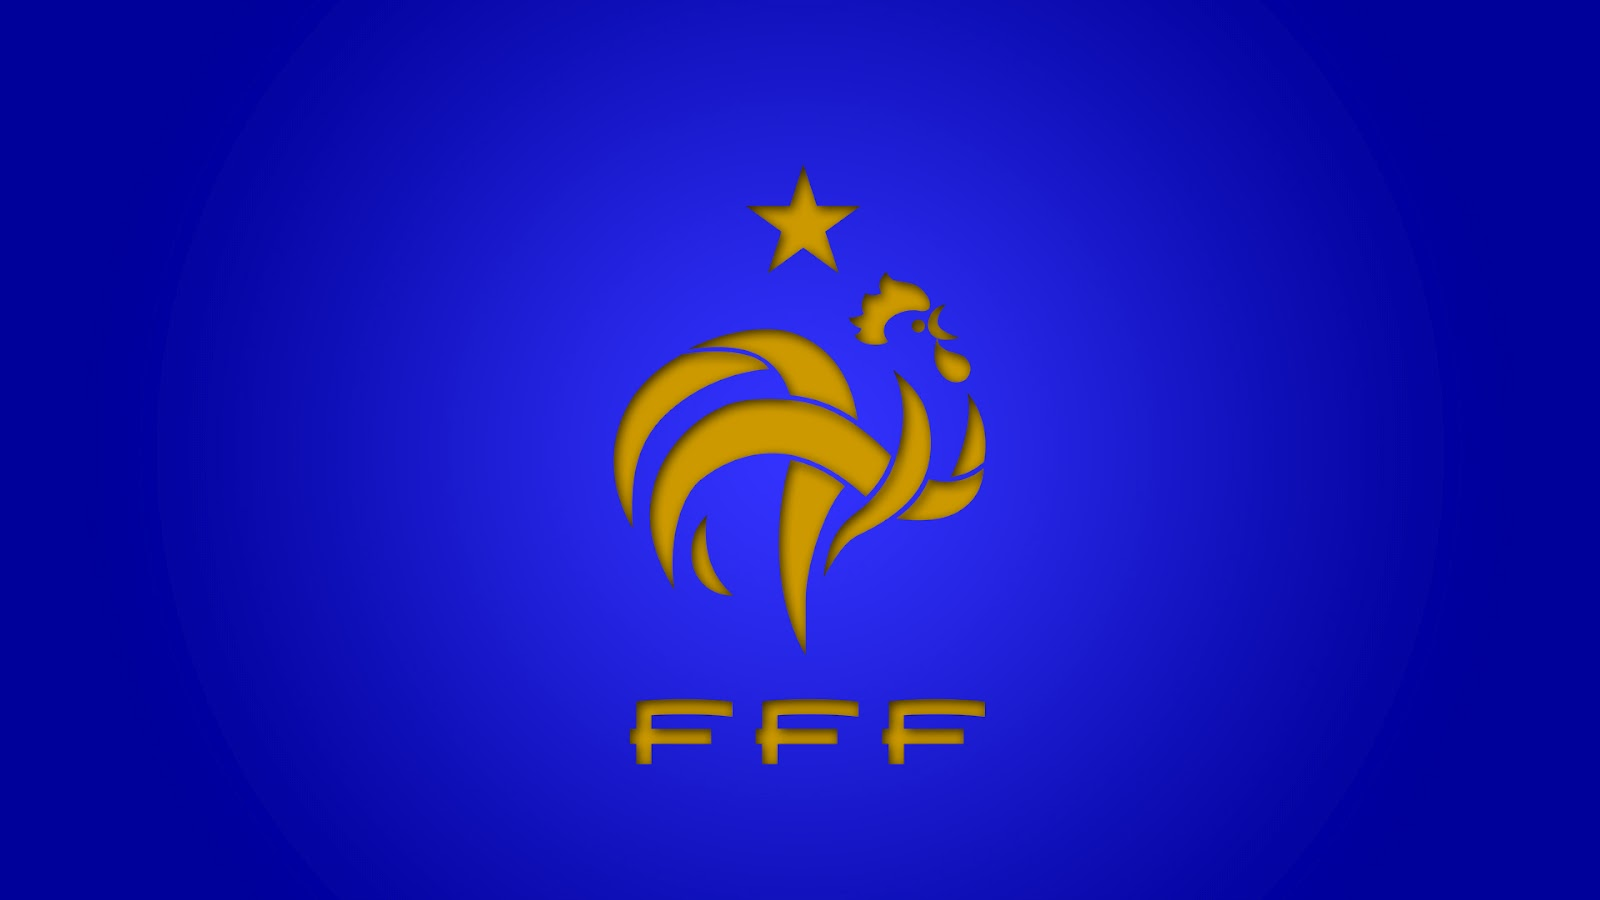 France Football Wallpaper Backgrounds And Picture